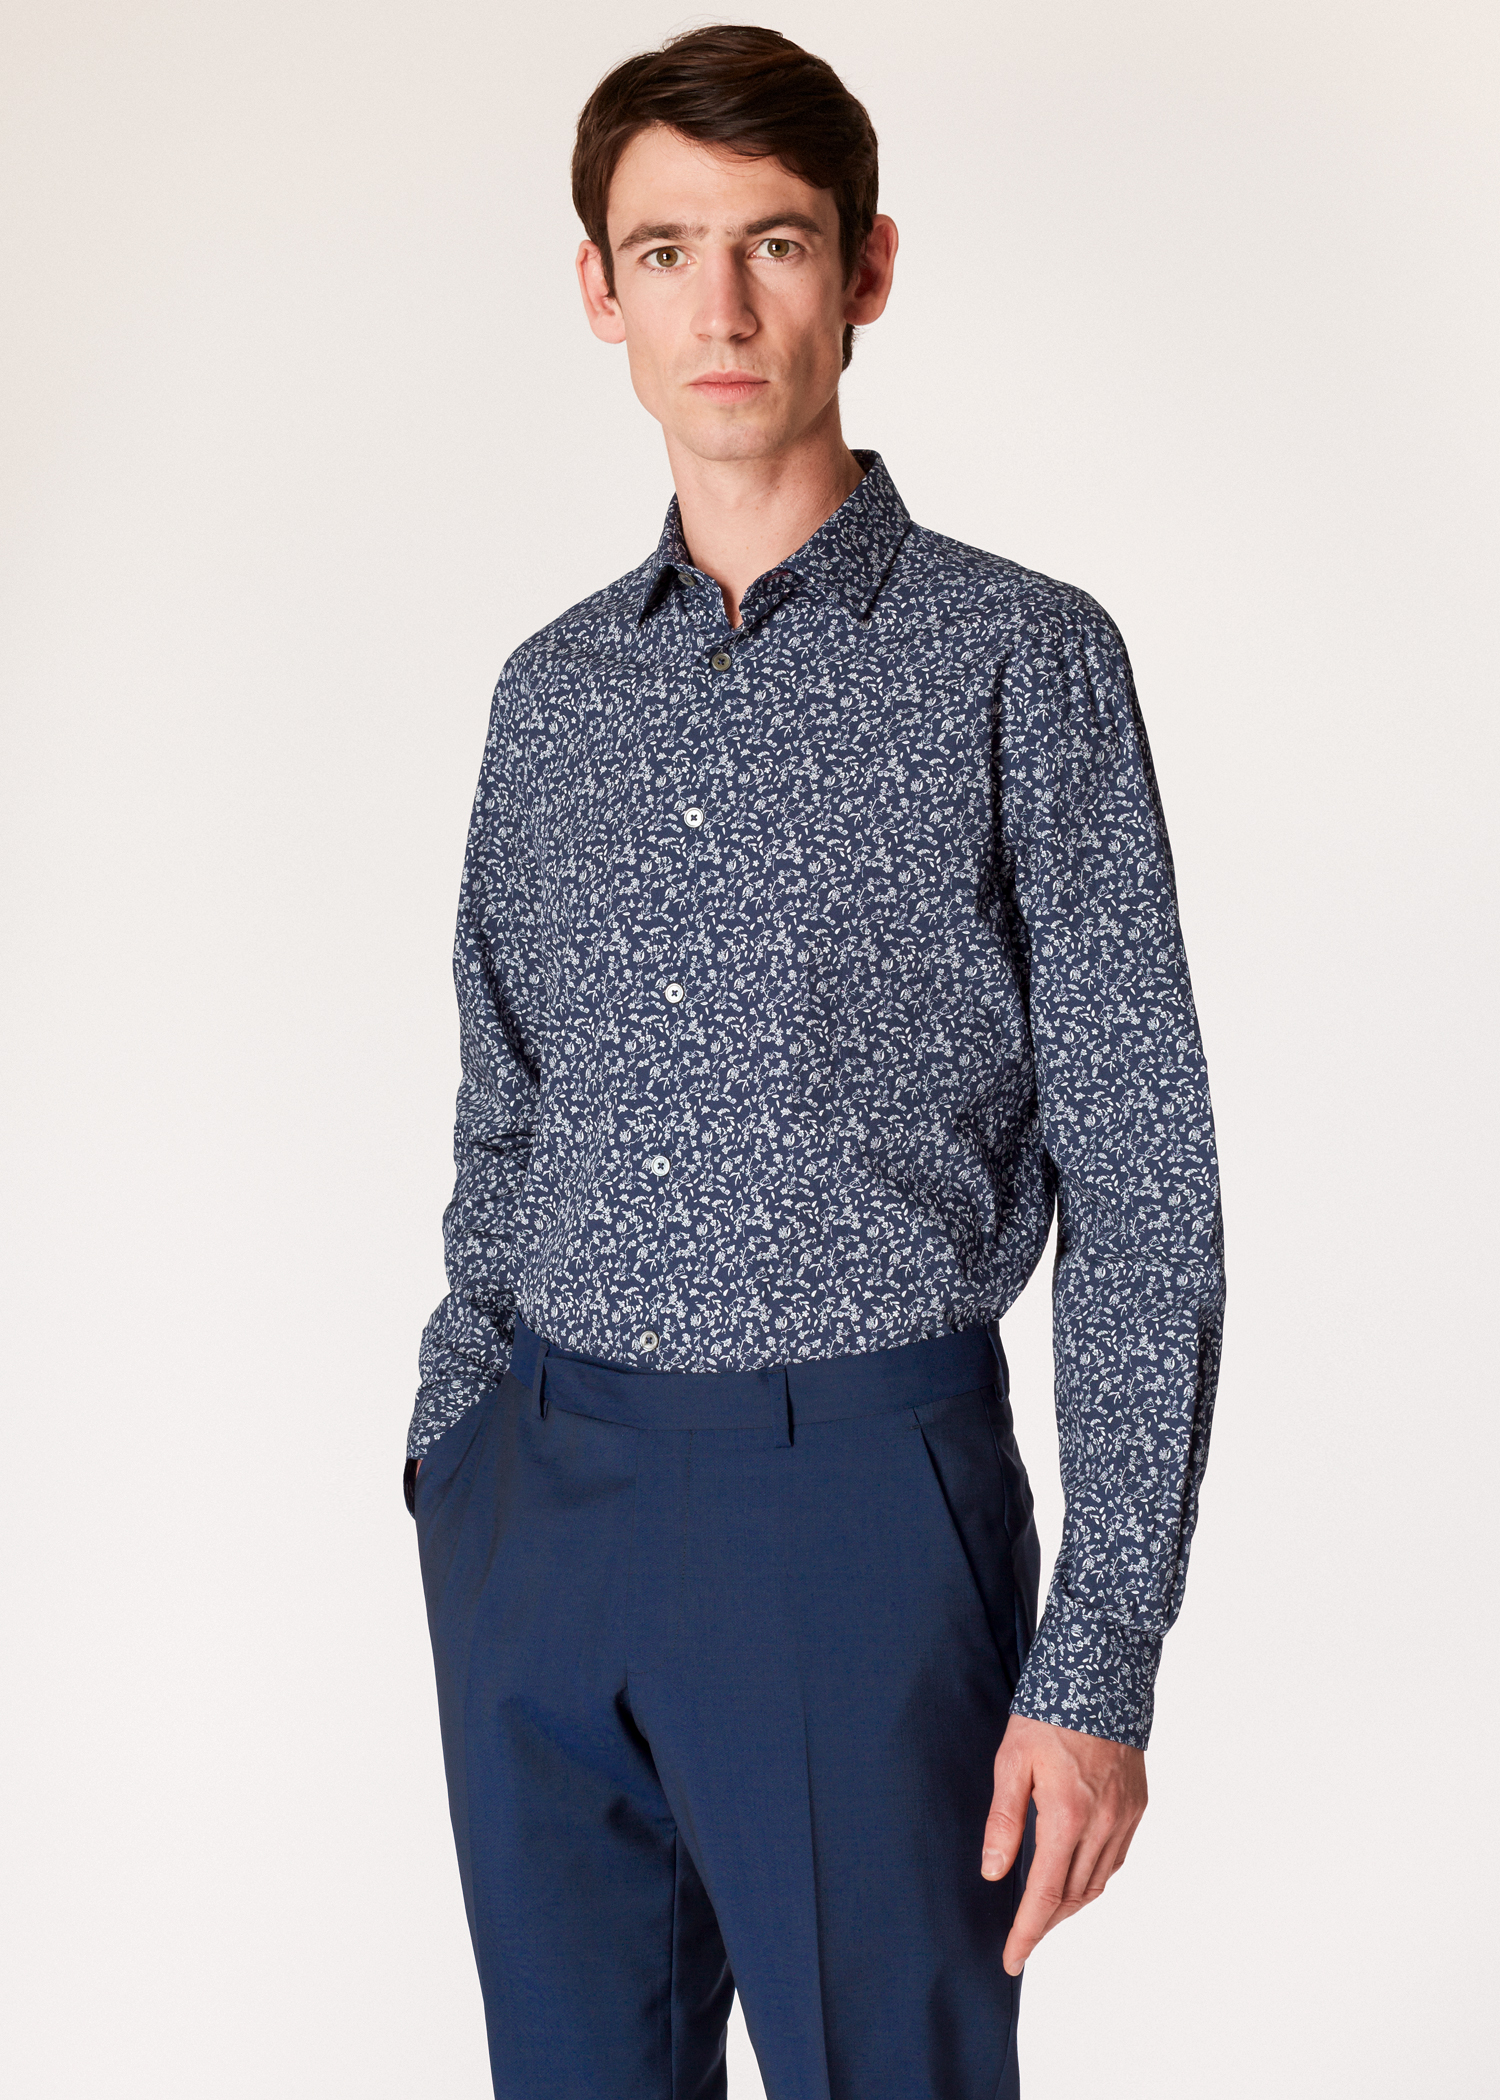 181eb7a3f7bf Model front close up- Men s Navy  Ditsy Floral  Print Cotton Shirt With  Contrasting